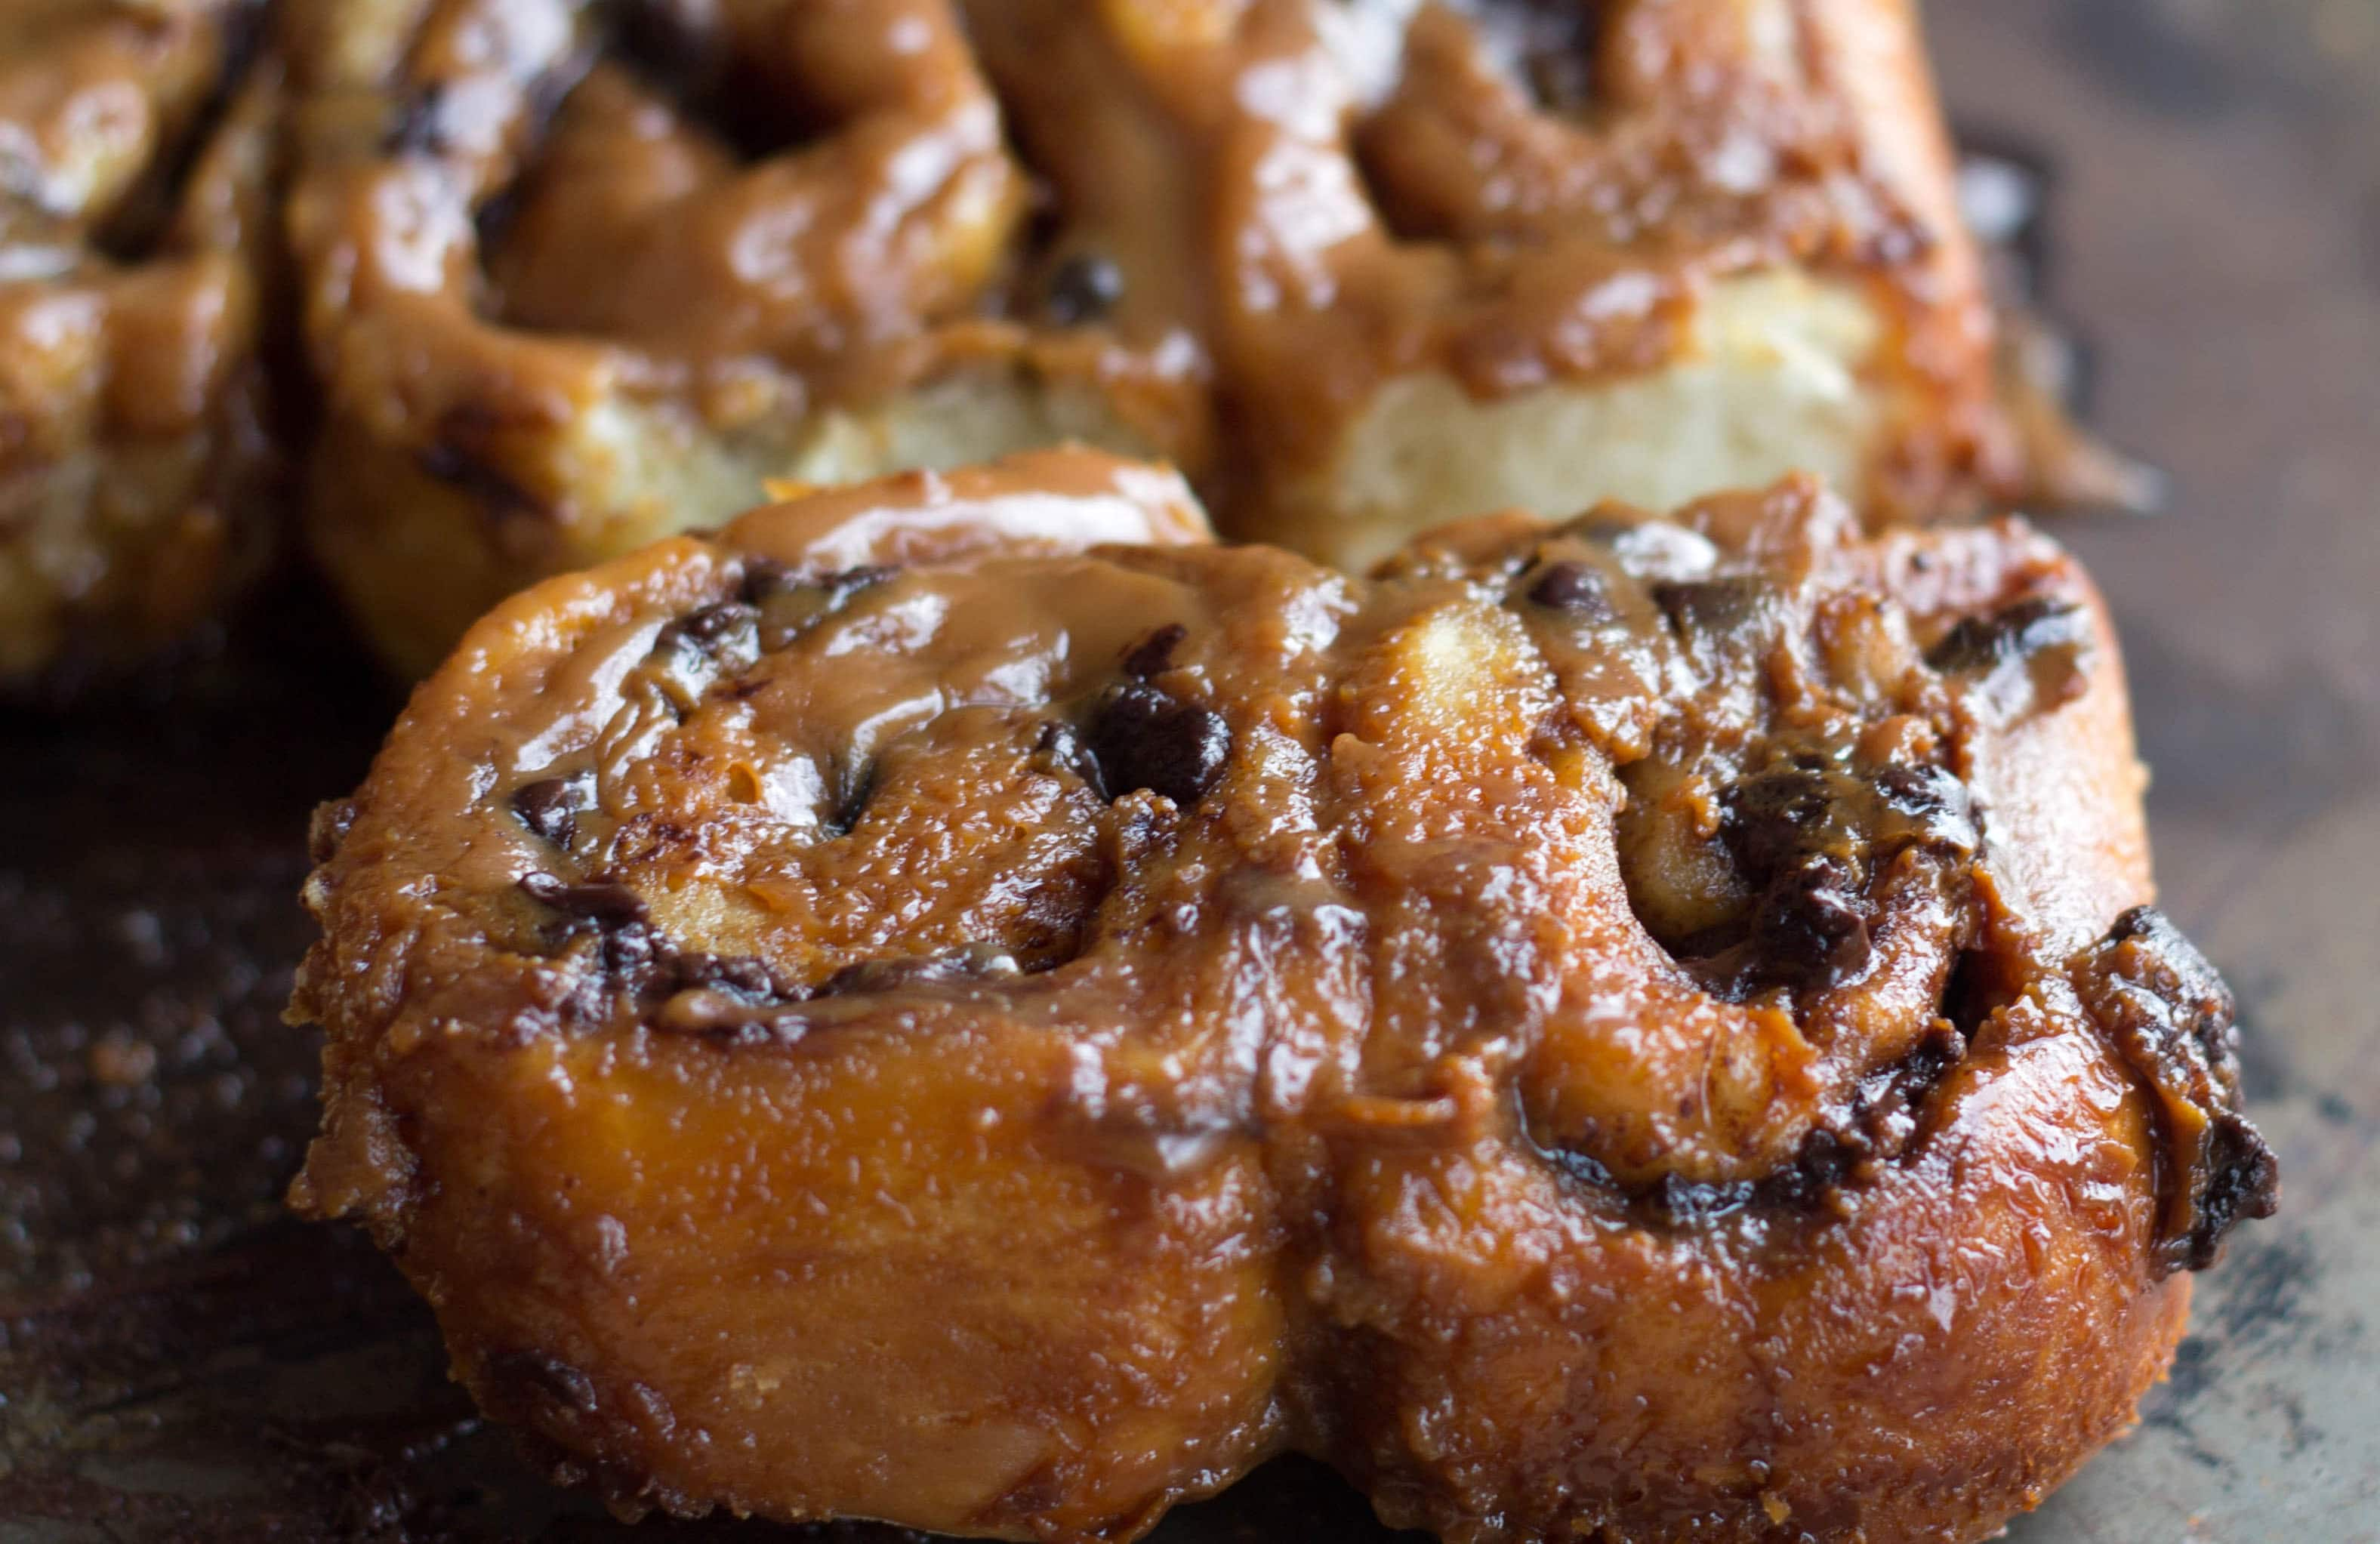 Quick Rise Chocolate & Salted Caramel Sticky Buns - Erren's Kitchen